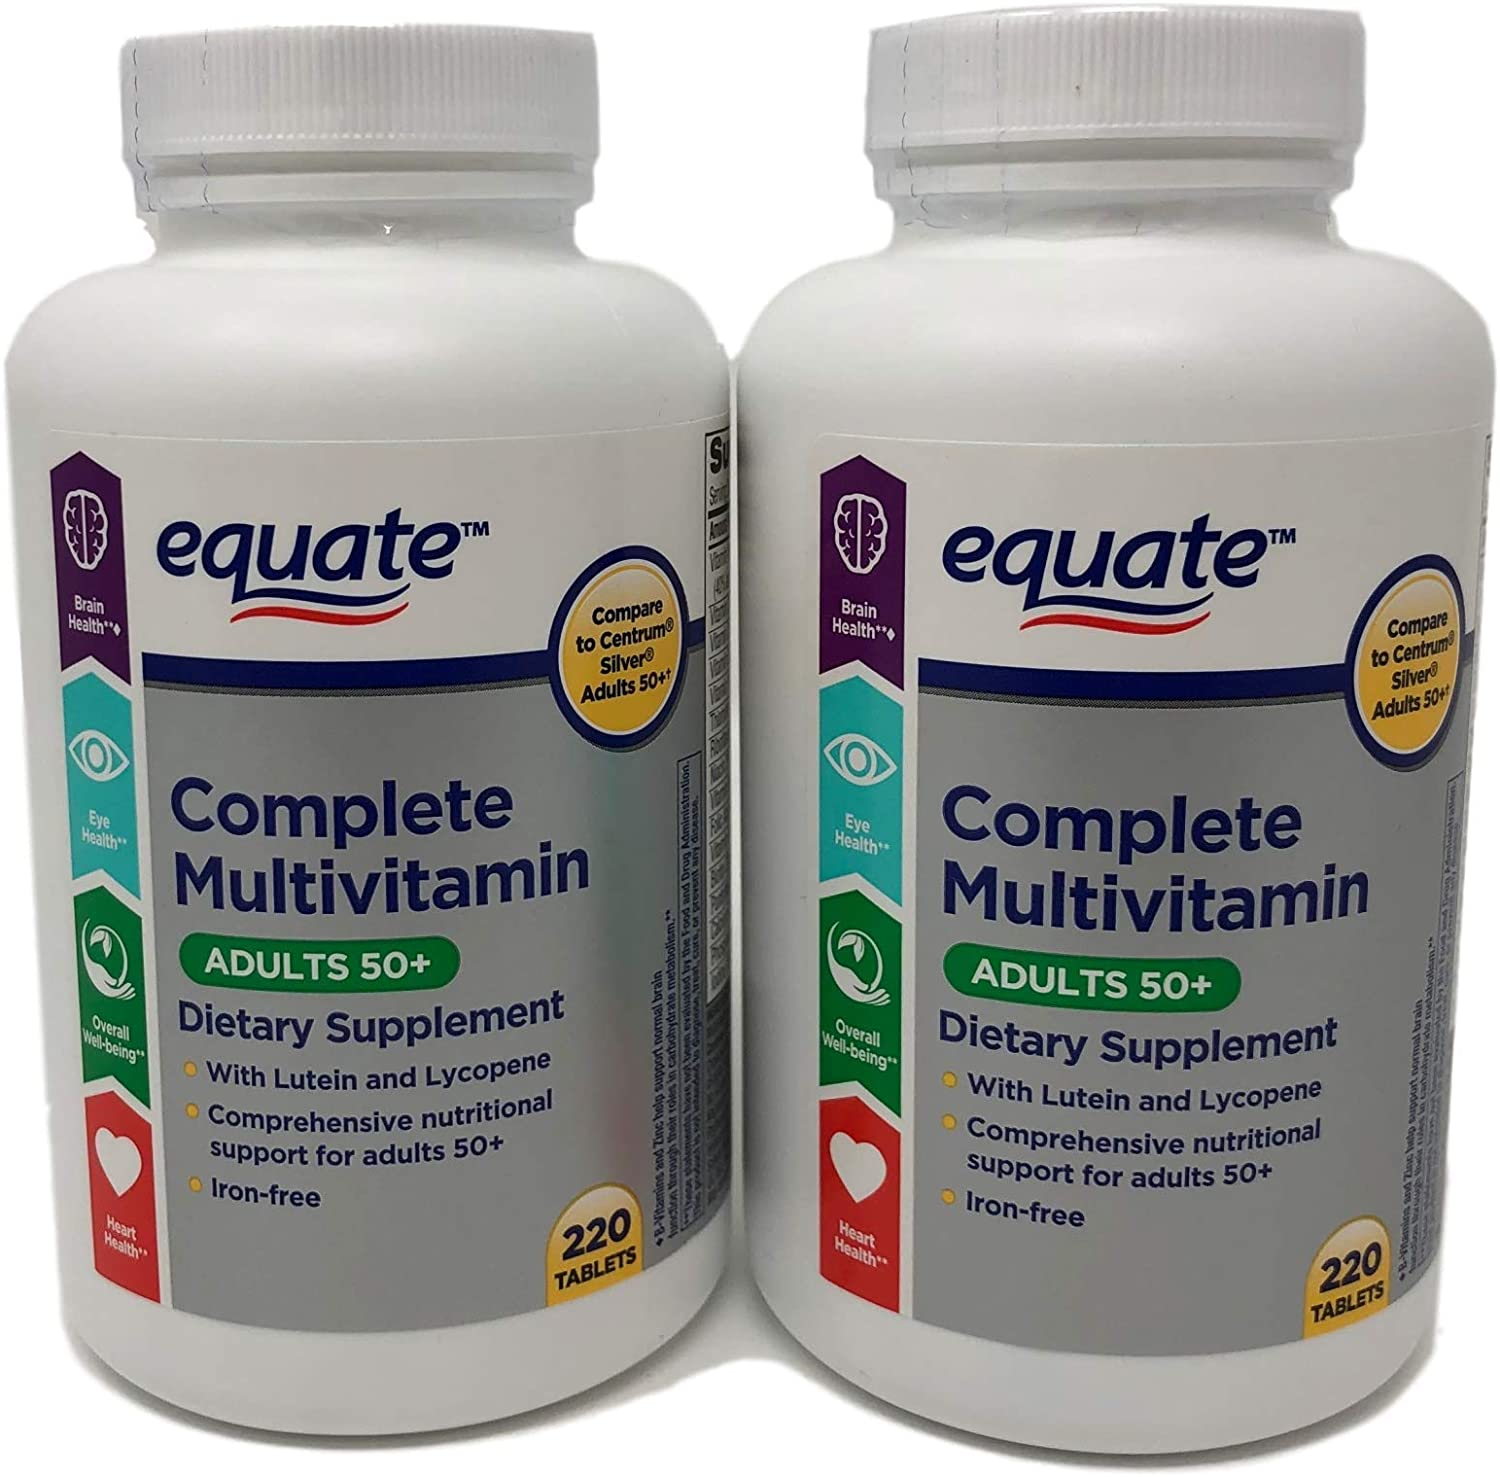 Equate Mature Adult 50 One Daily Complete Multivitamin Compare to Centrum Silver Adults 50 220 Count 2